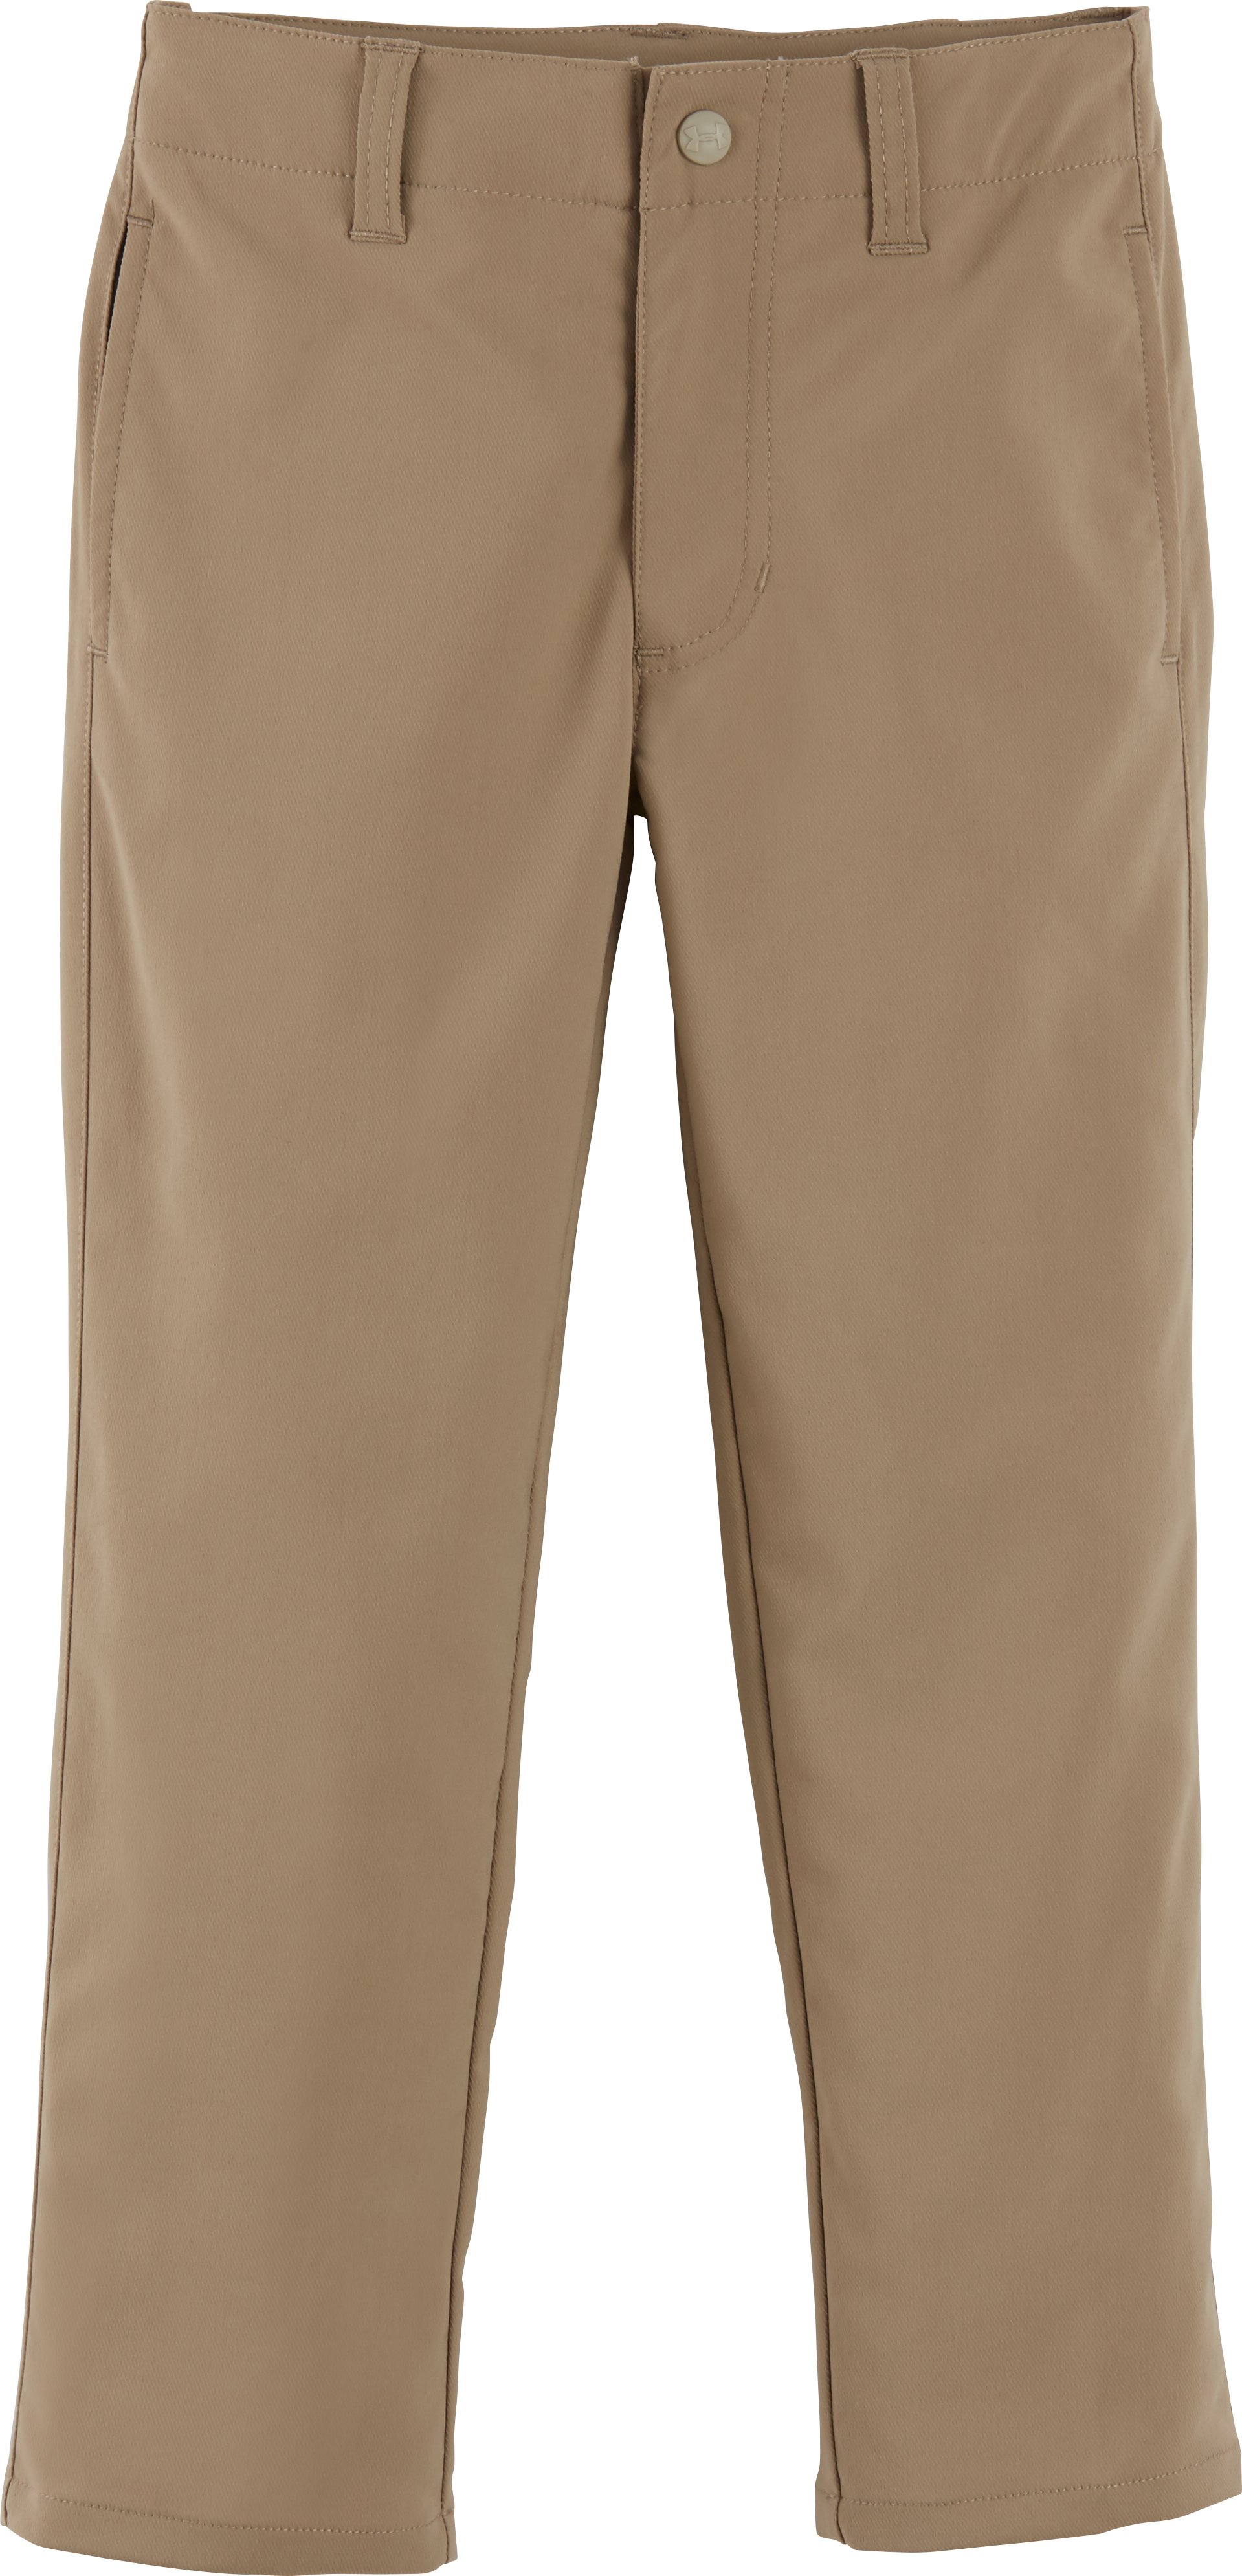 Boys' Pre-School UA Match Play Pants, Canvas, Laydown